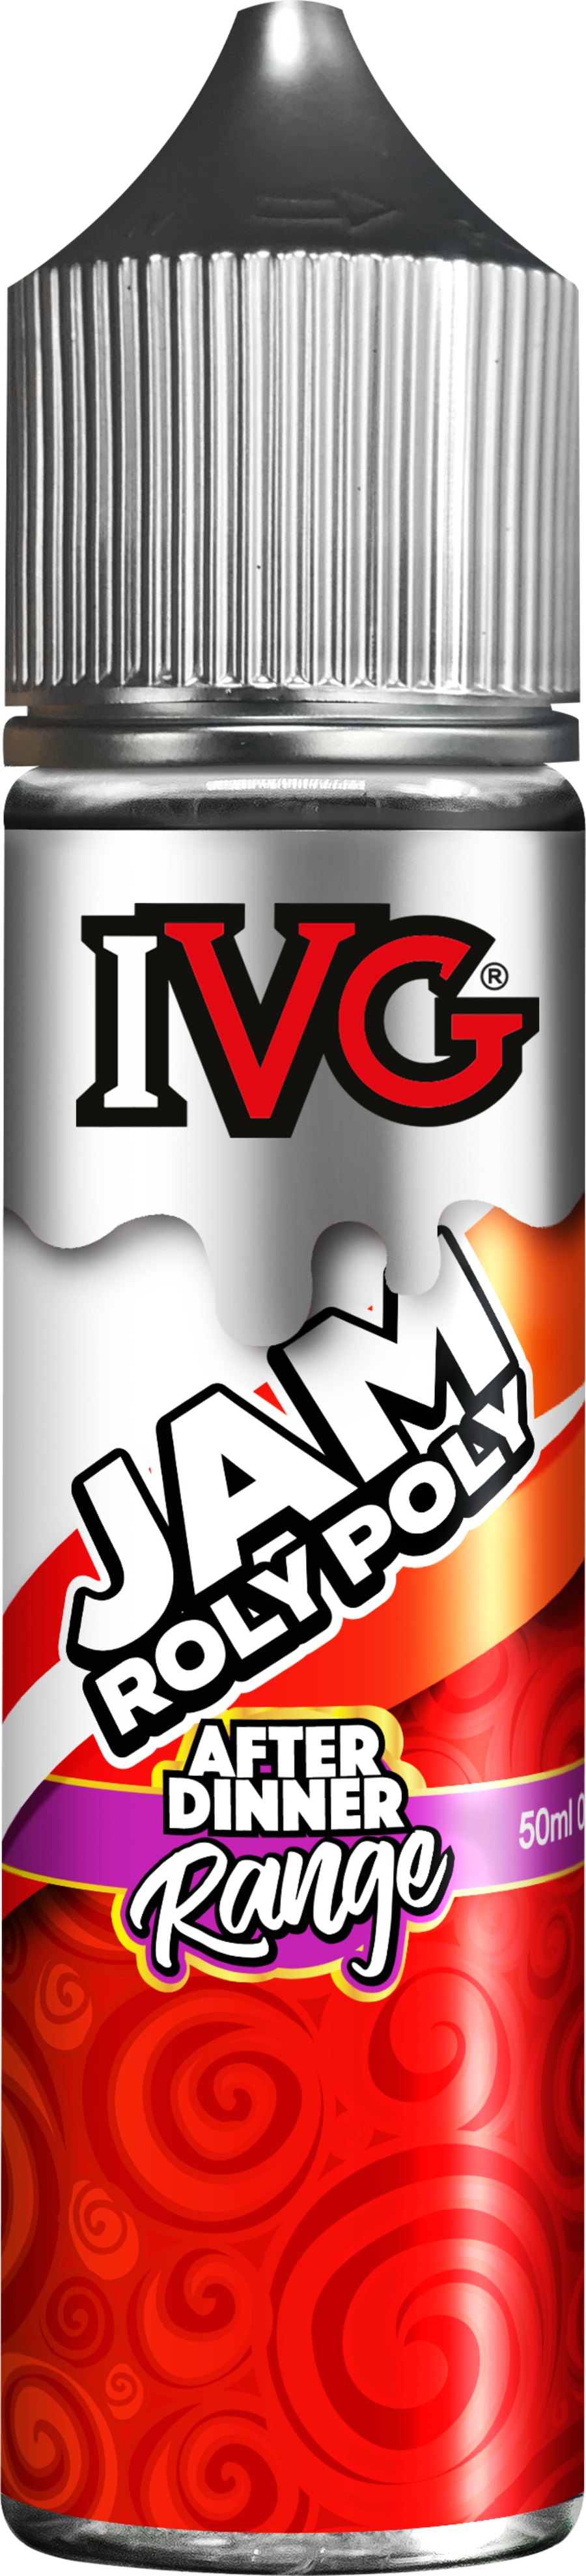 Jam RolyPoly By I VG After Dinner 50ml